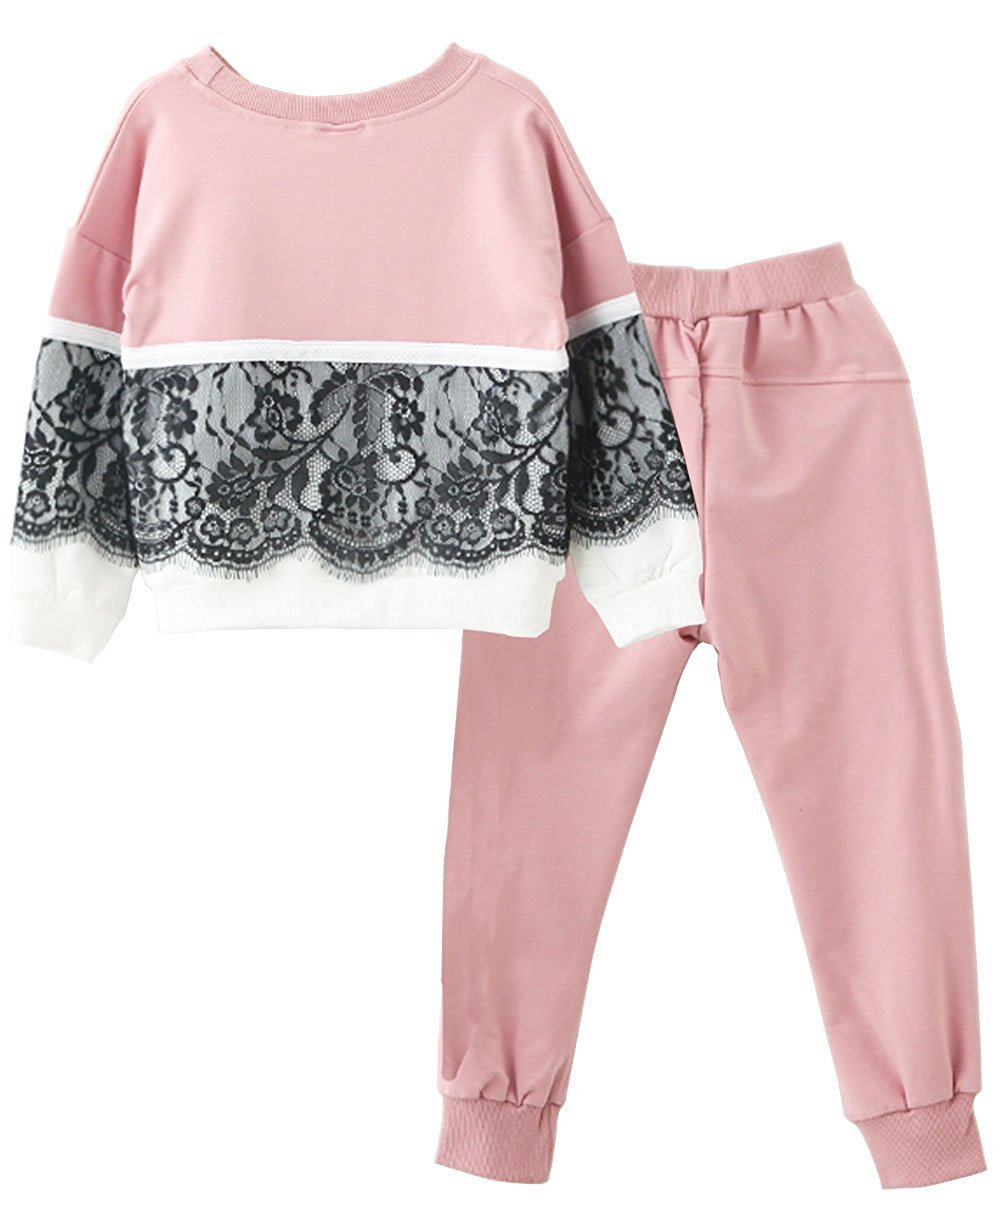 M RACLE Cute Little Girls' 2 Pieces Long Sleeve Top Pants Leggings Clothes Set Outfit (10-11 Years, Pink White) by M RACLE (Image #3)